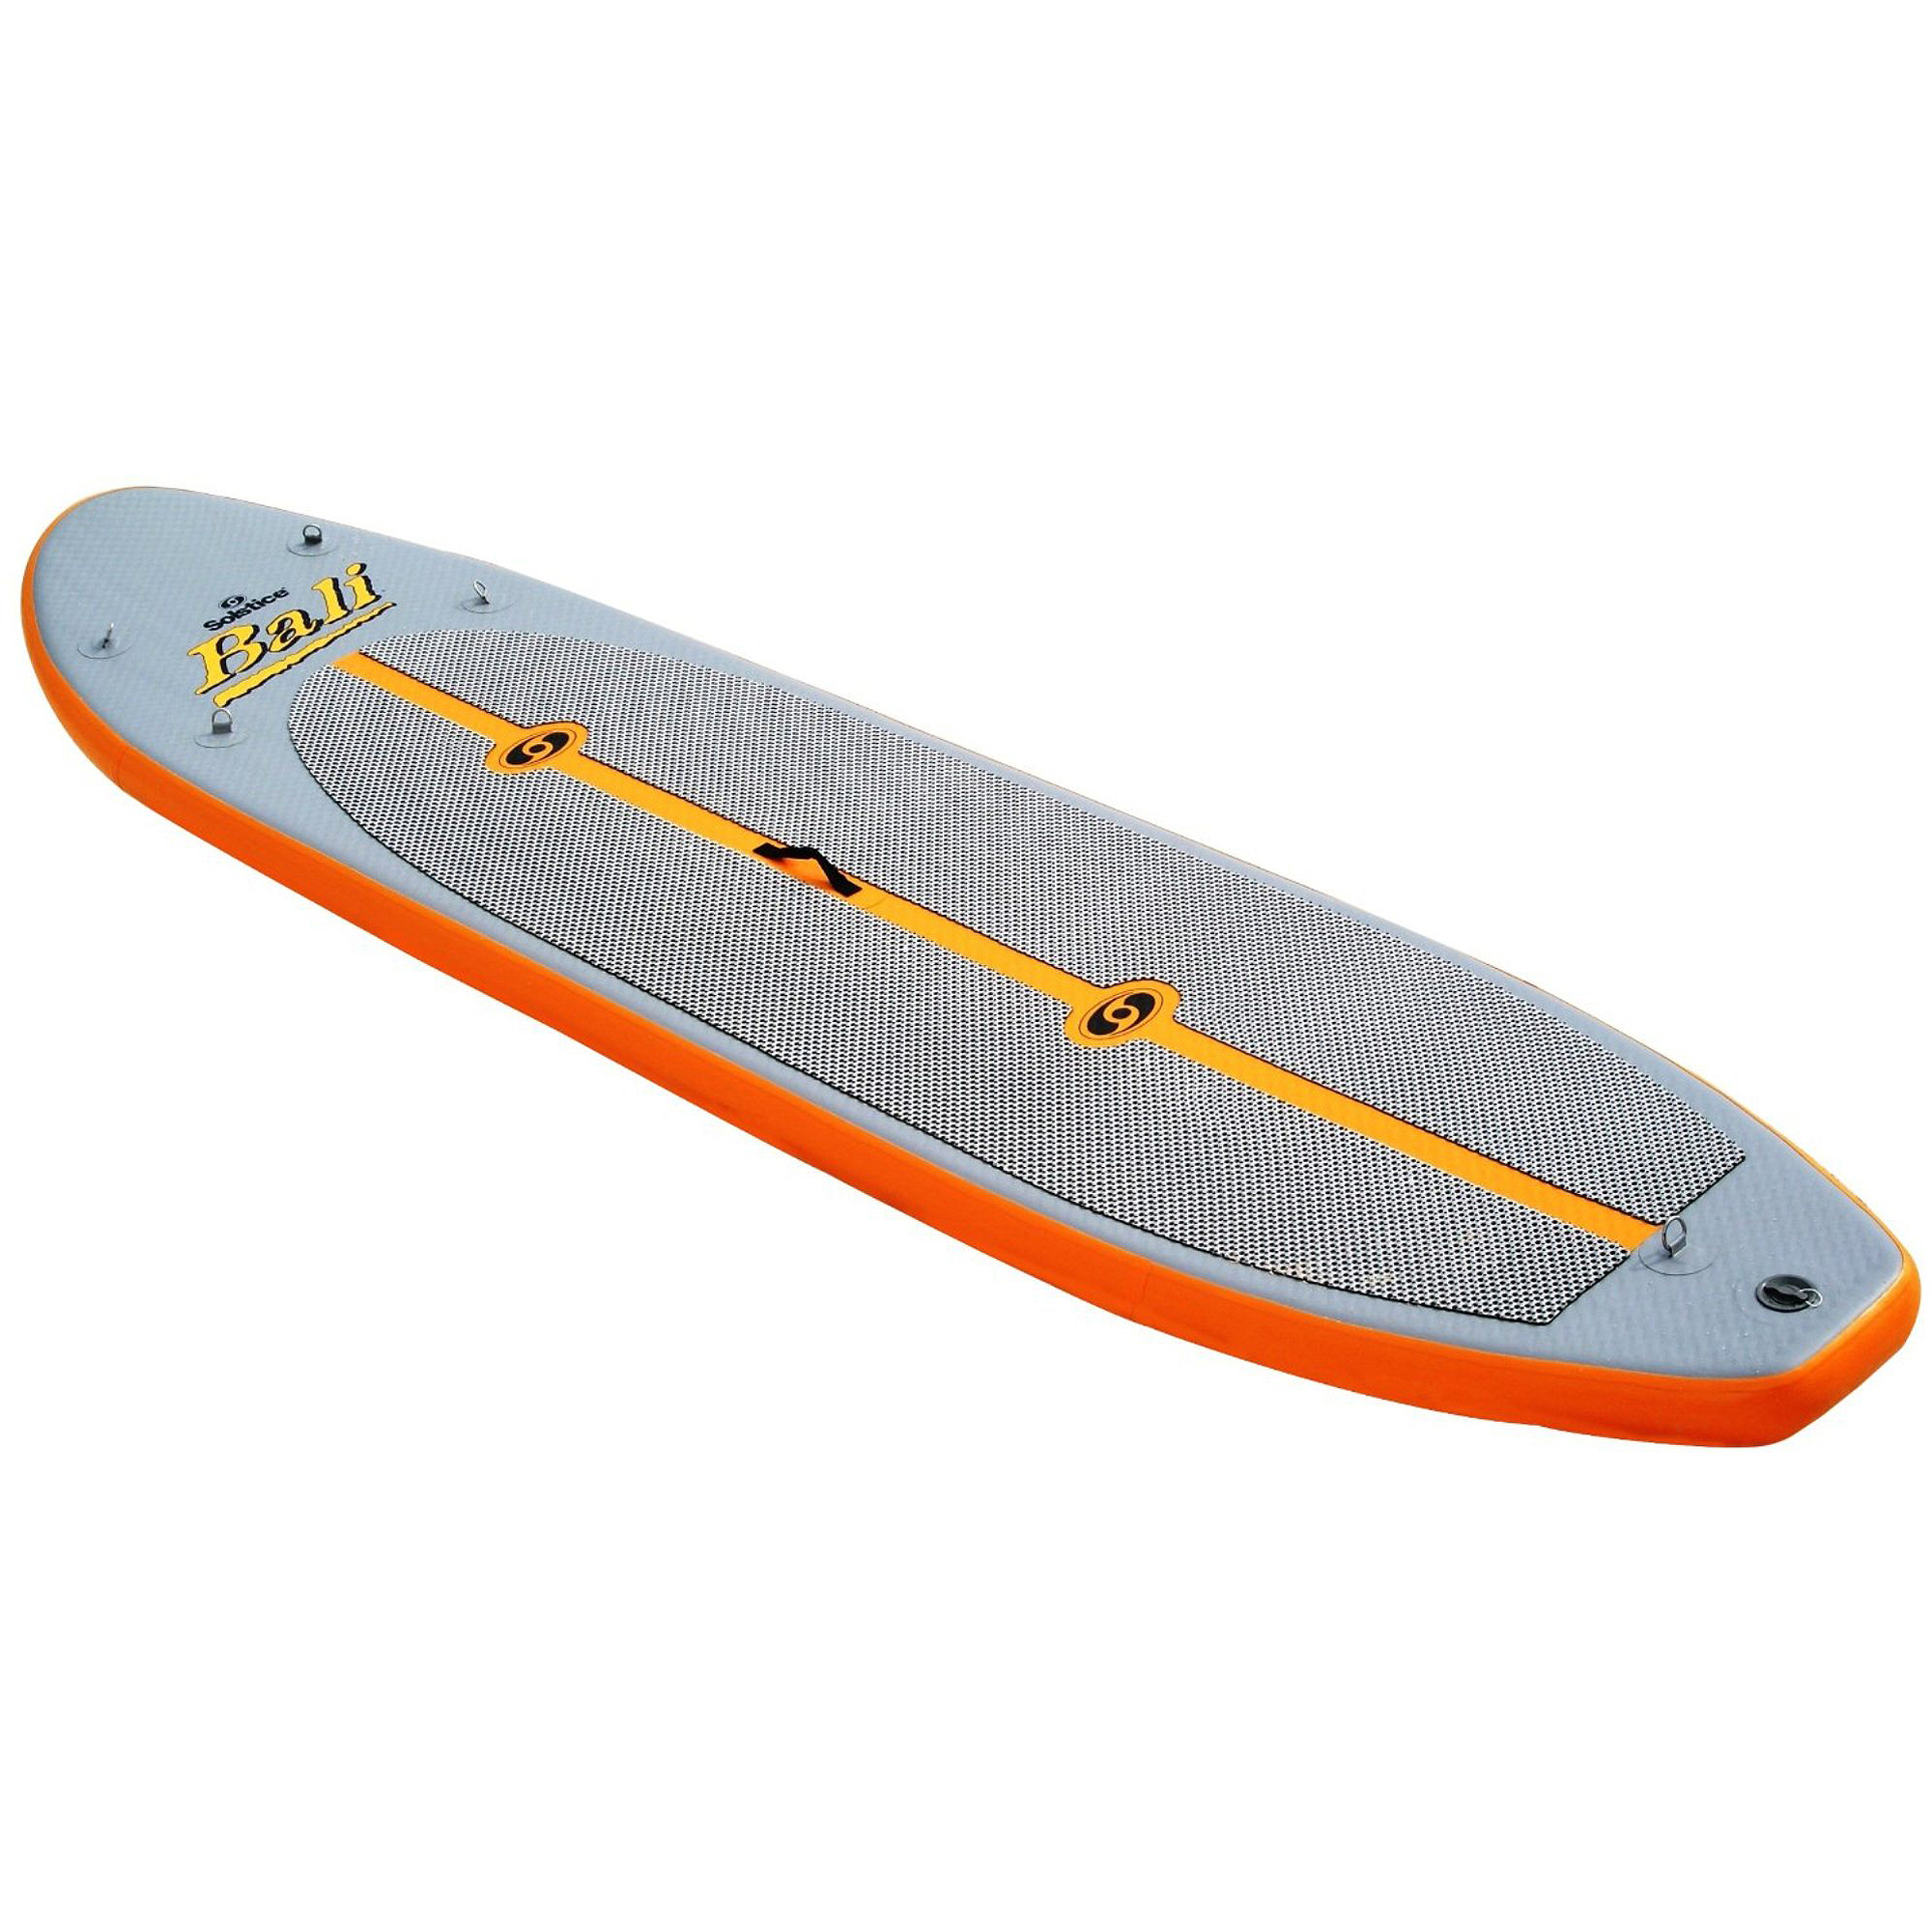 Solstice Bali Stand-Up Paddleboard by International Leisure